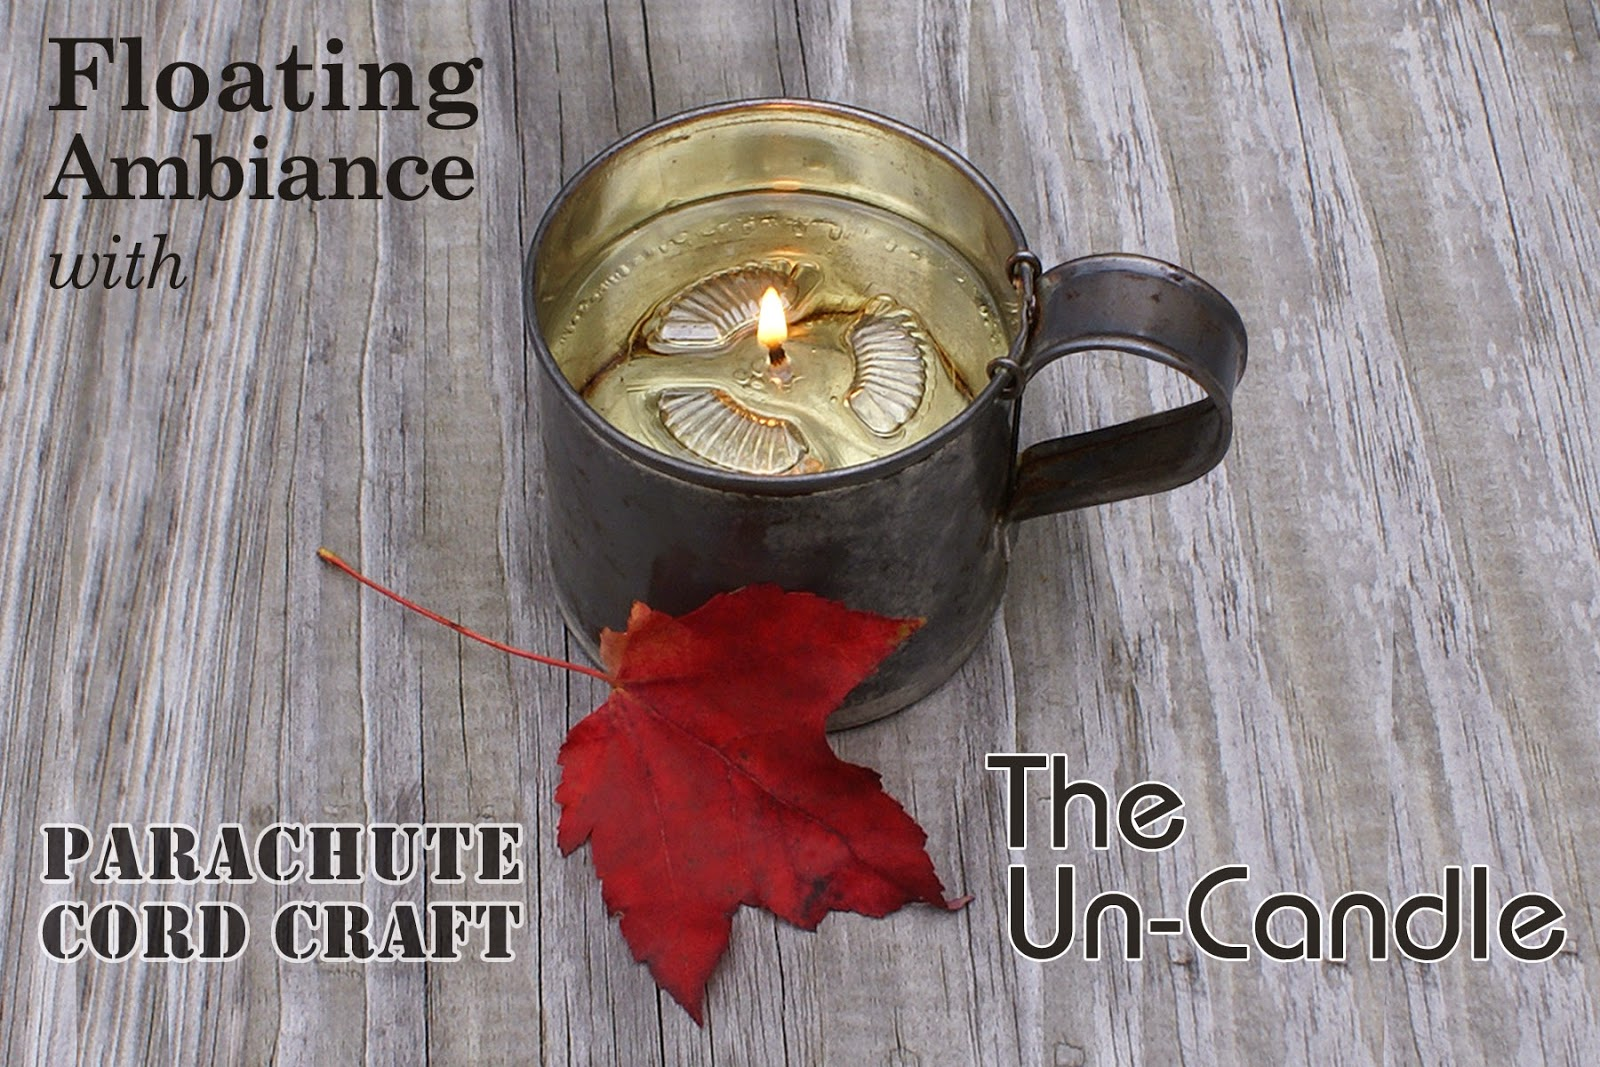 Introducing The Un-Candle - Pepperell Braiding Company